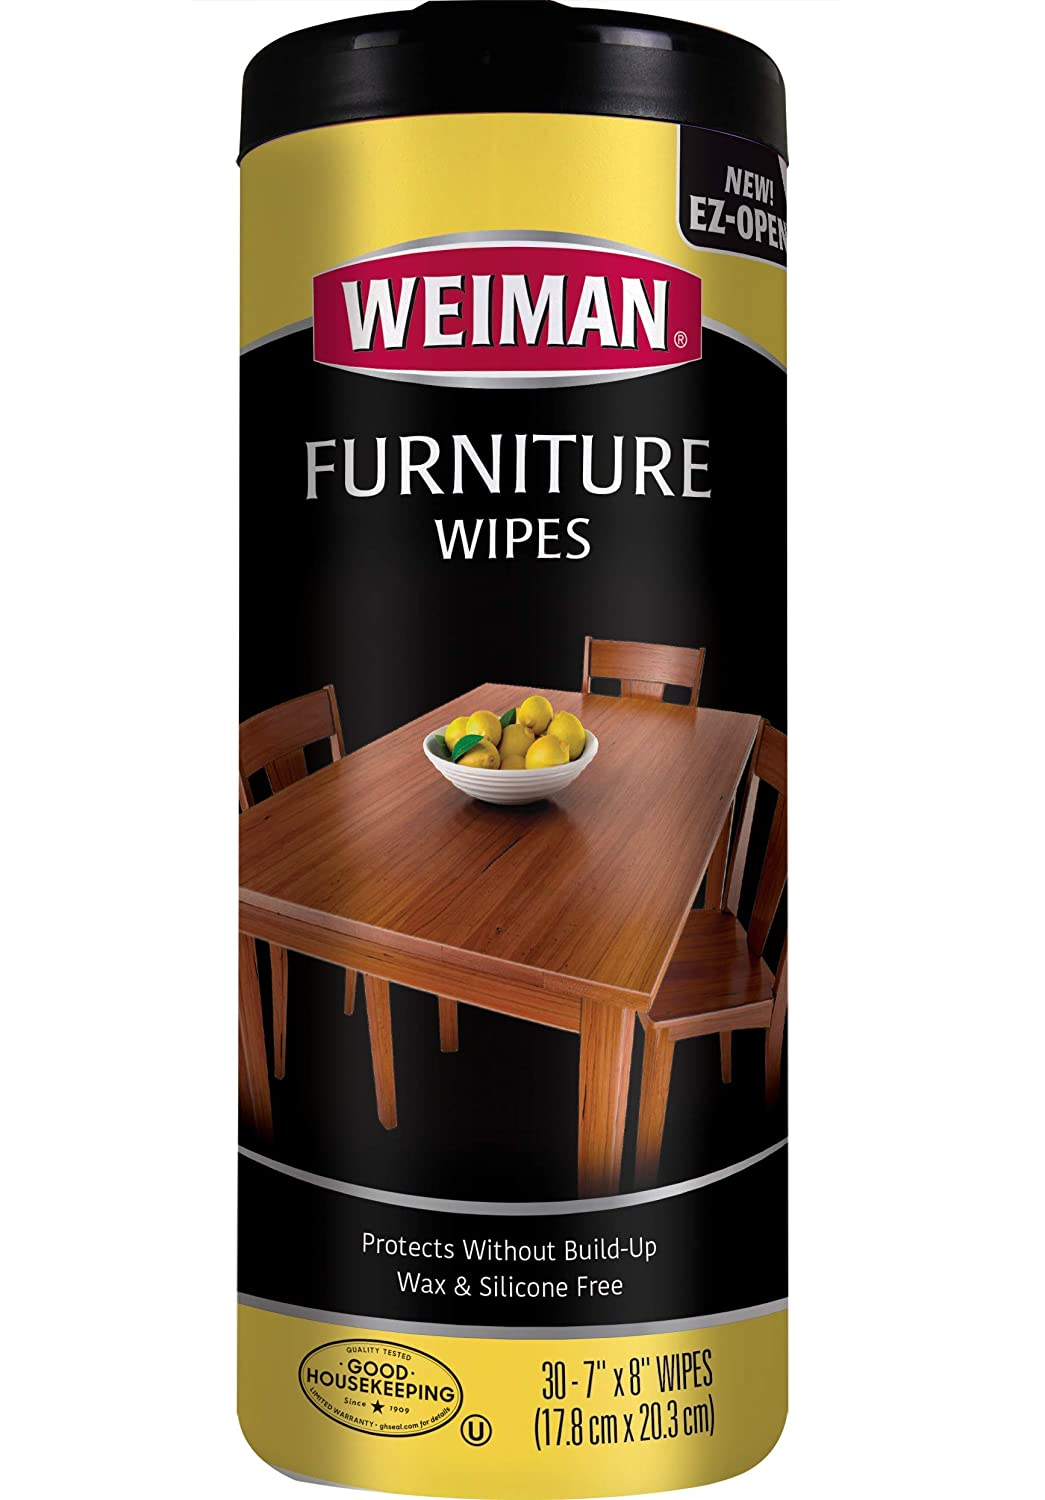 Weiman Wood Cleaner and Polish Wipes - Non Toxic For Furniture To Beautify  & Protect, No Build-Up, Contains UVX-10, Pleasant Scent, Surface Safe - 10